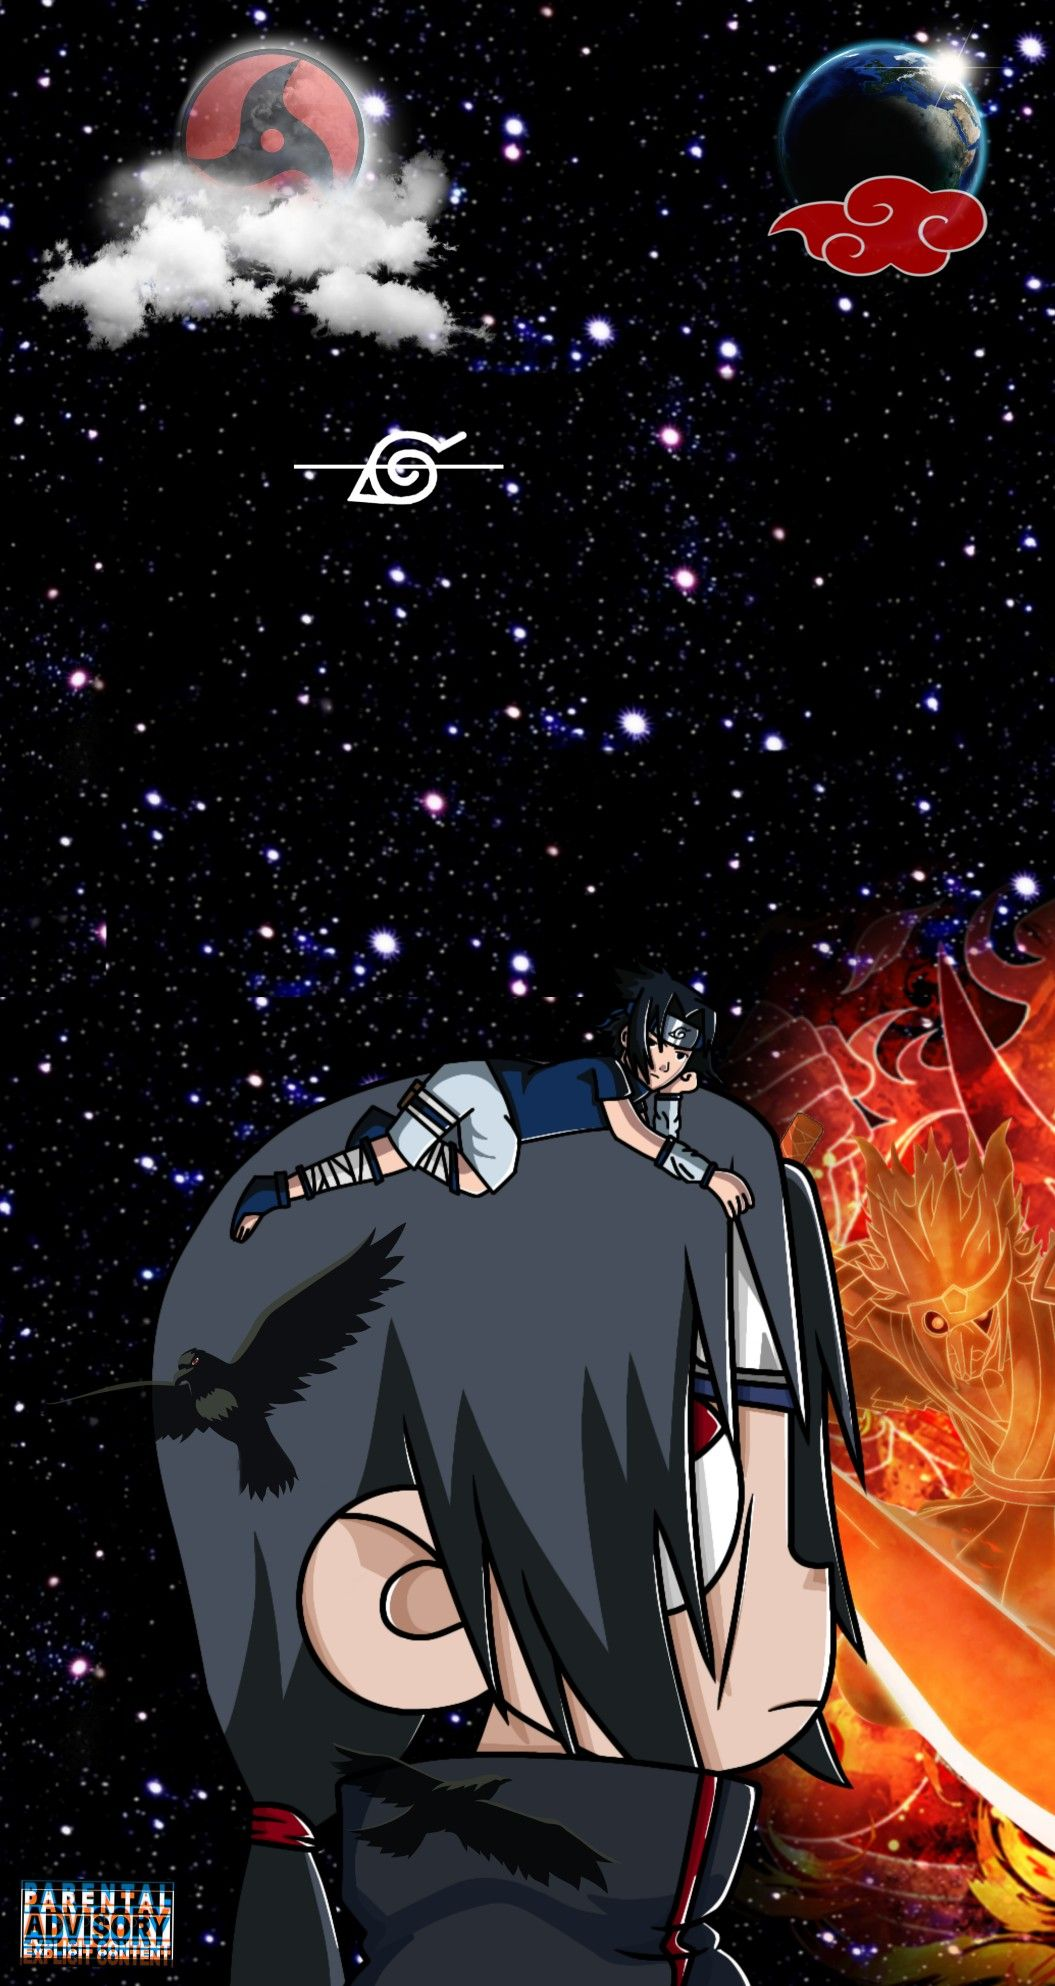 Art By Rxmce On Instagram Naruto Phone Wallpaper Anime Canvas Naruto Wallpaper Iphone Coolest Naruto wallpapers in the world